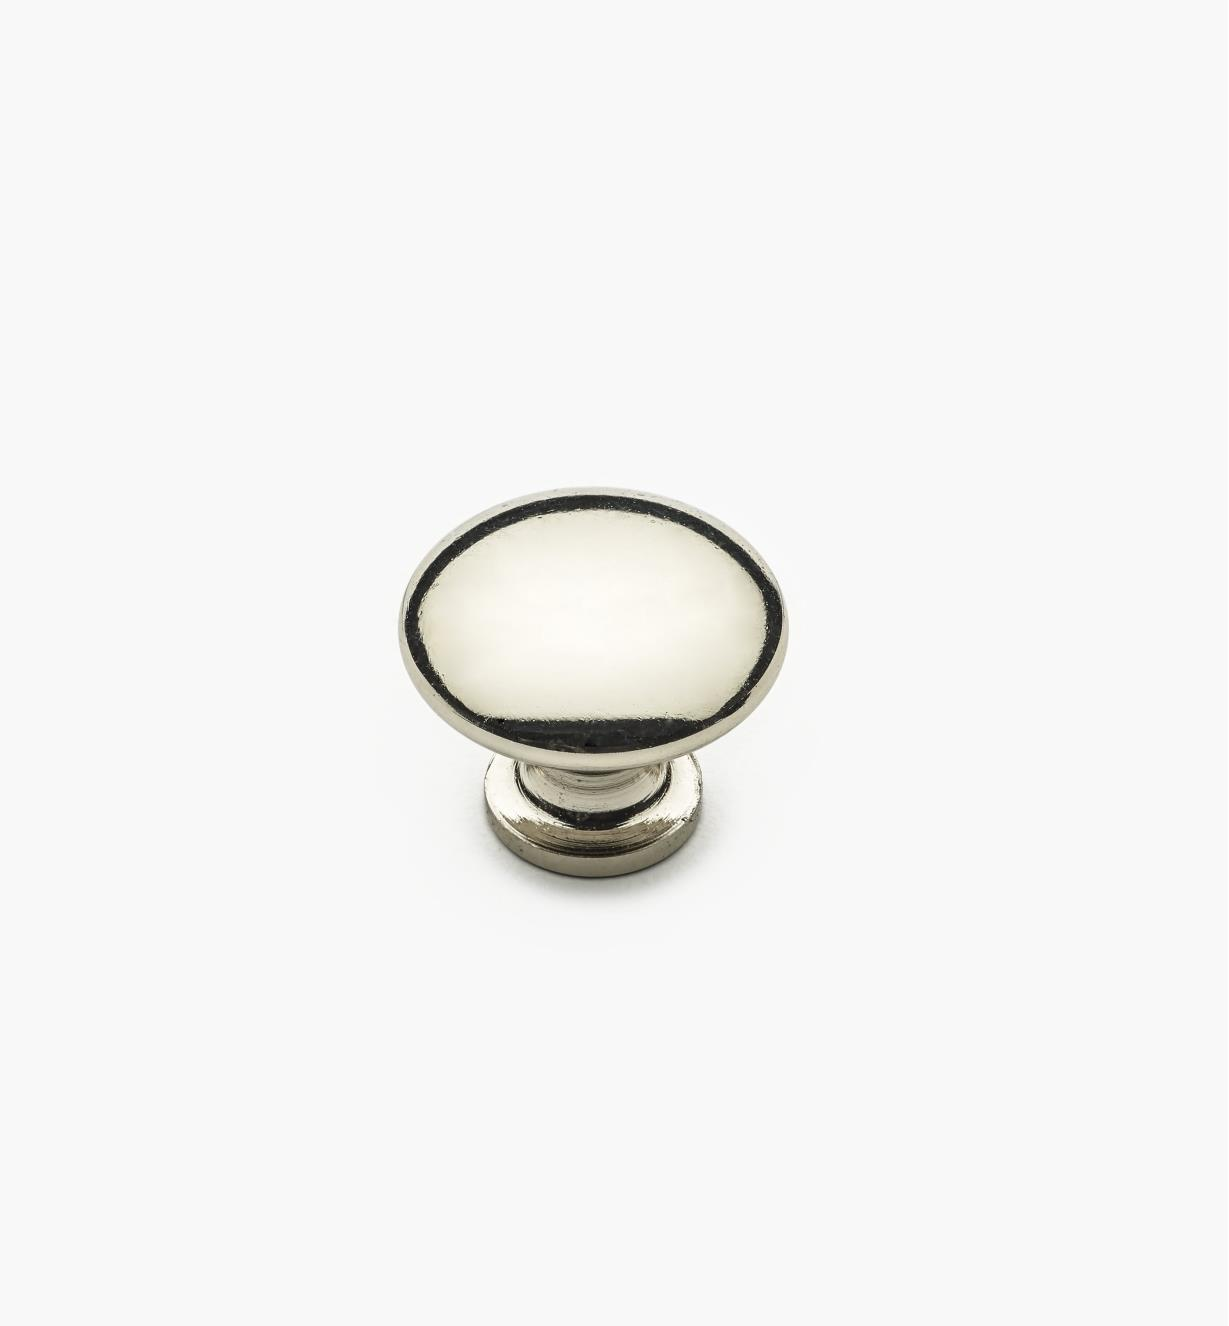 "02W4344 - 7/8"" x 3/4"" Polished Nickel Knob"